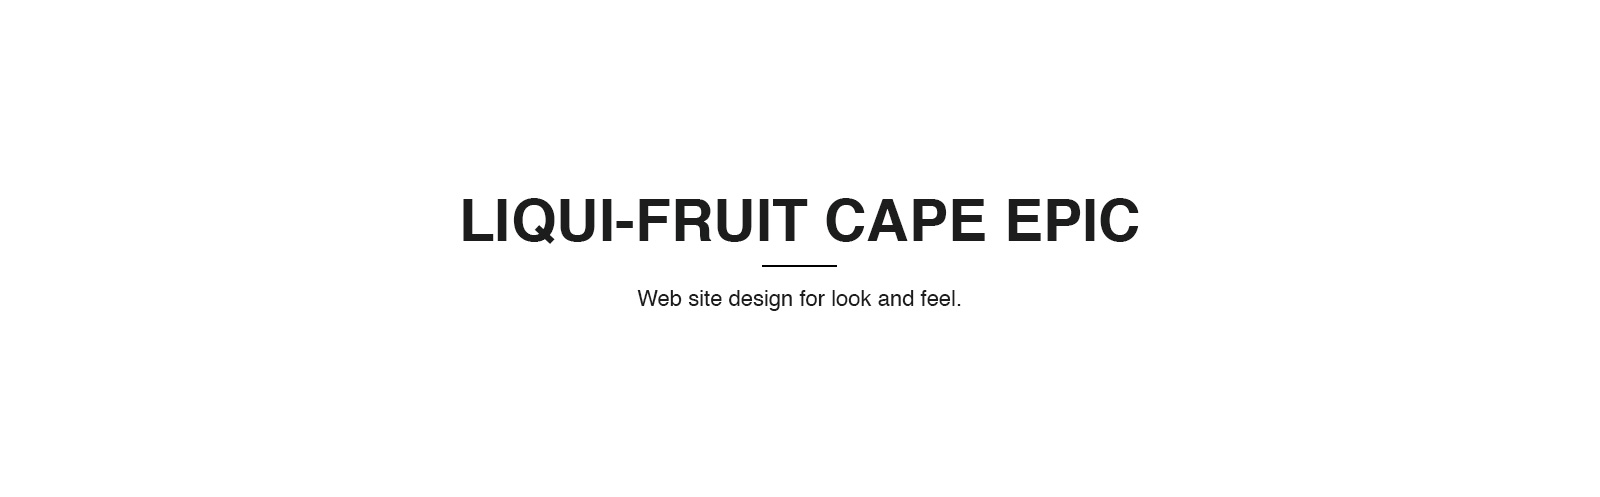 Liquifruit_Layout_1